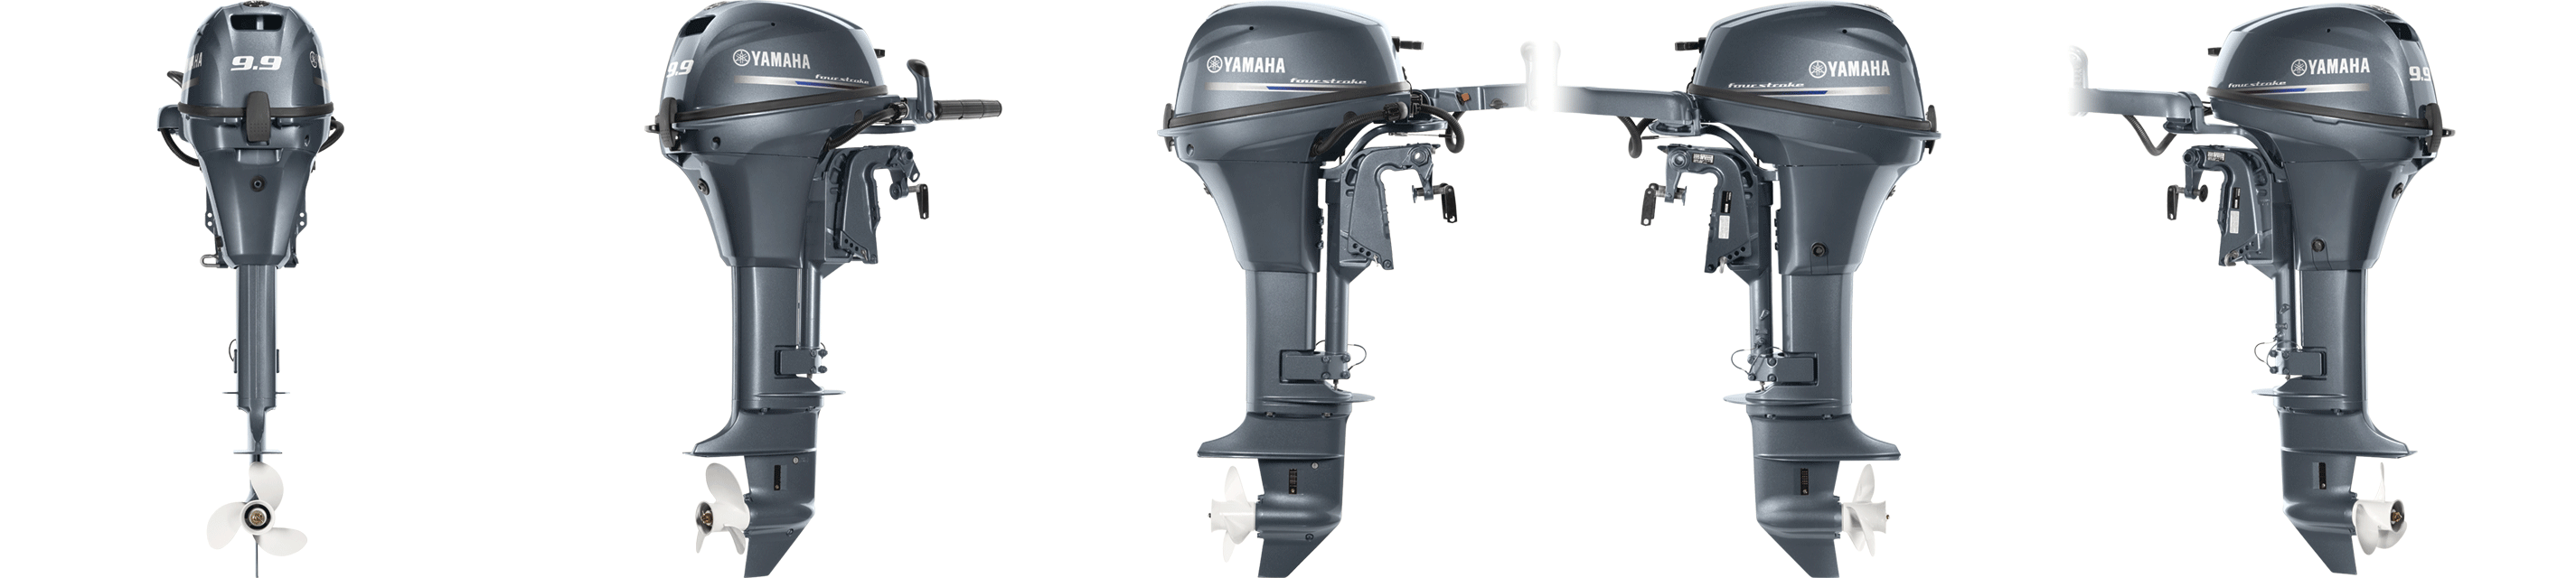 Outboards 9 9 and 8 hp portable yamaha outboards for Best prop for 25 hp yamaha 2 stroke